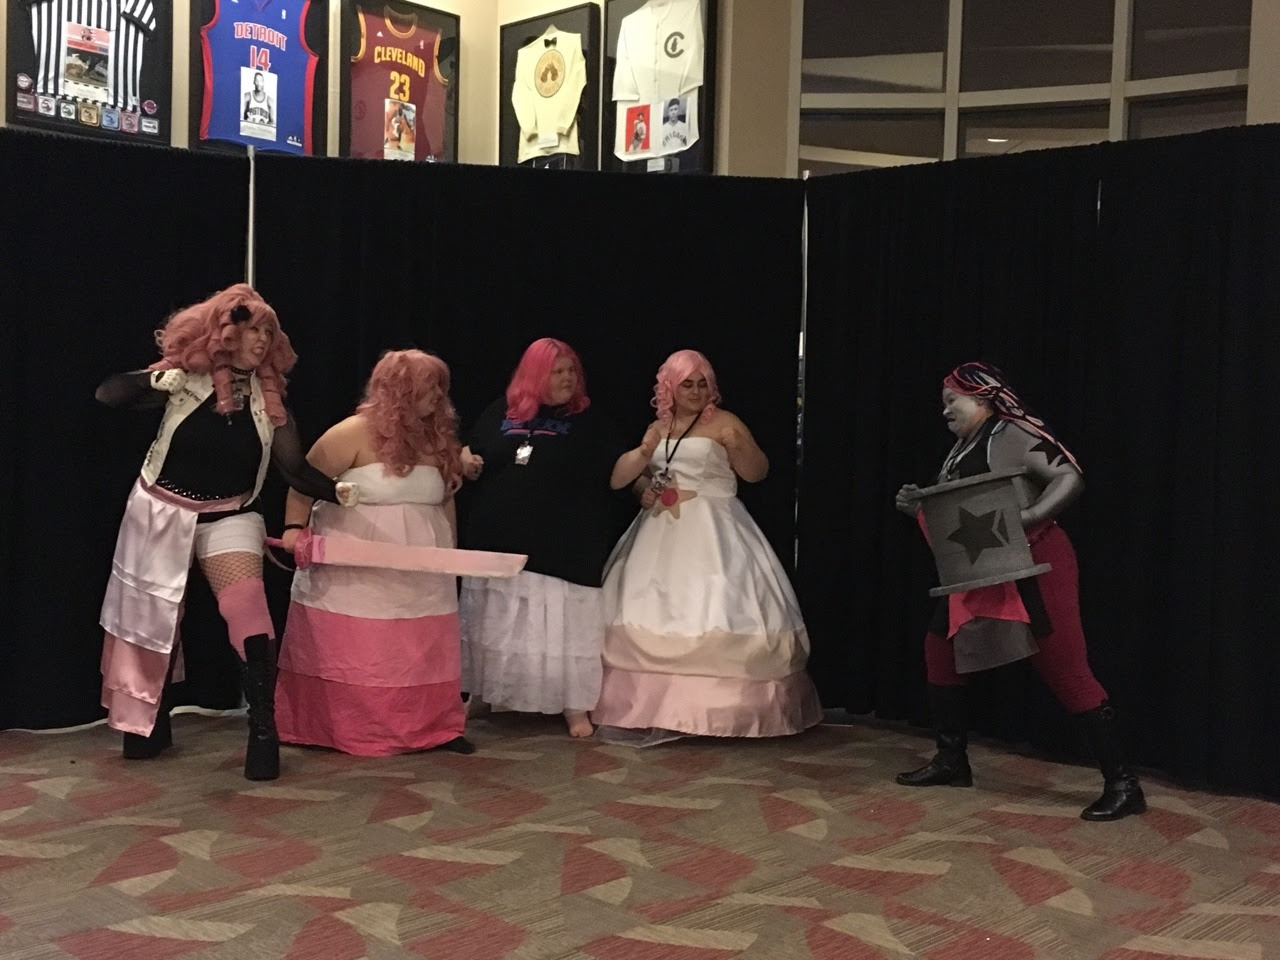 Second to last post (thank God. Tumblr's really glitching out posting these lol) SU photoshoot pt 5 Shuto Con 2017 pics pt 7 If your cosplay is featured send me a PM and I'll add credit 😄